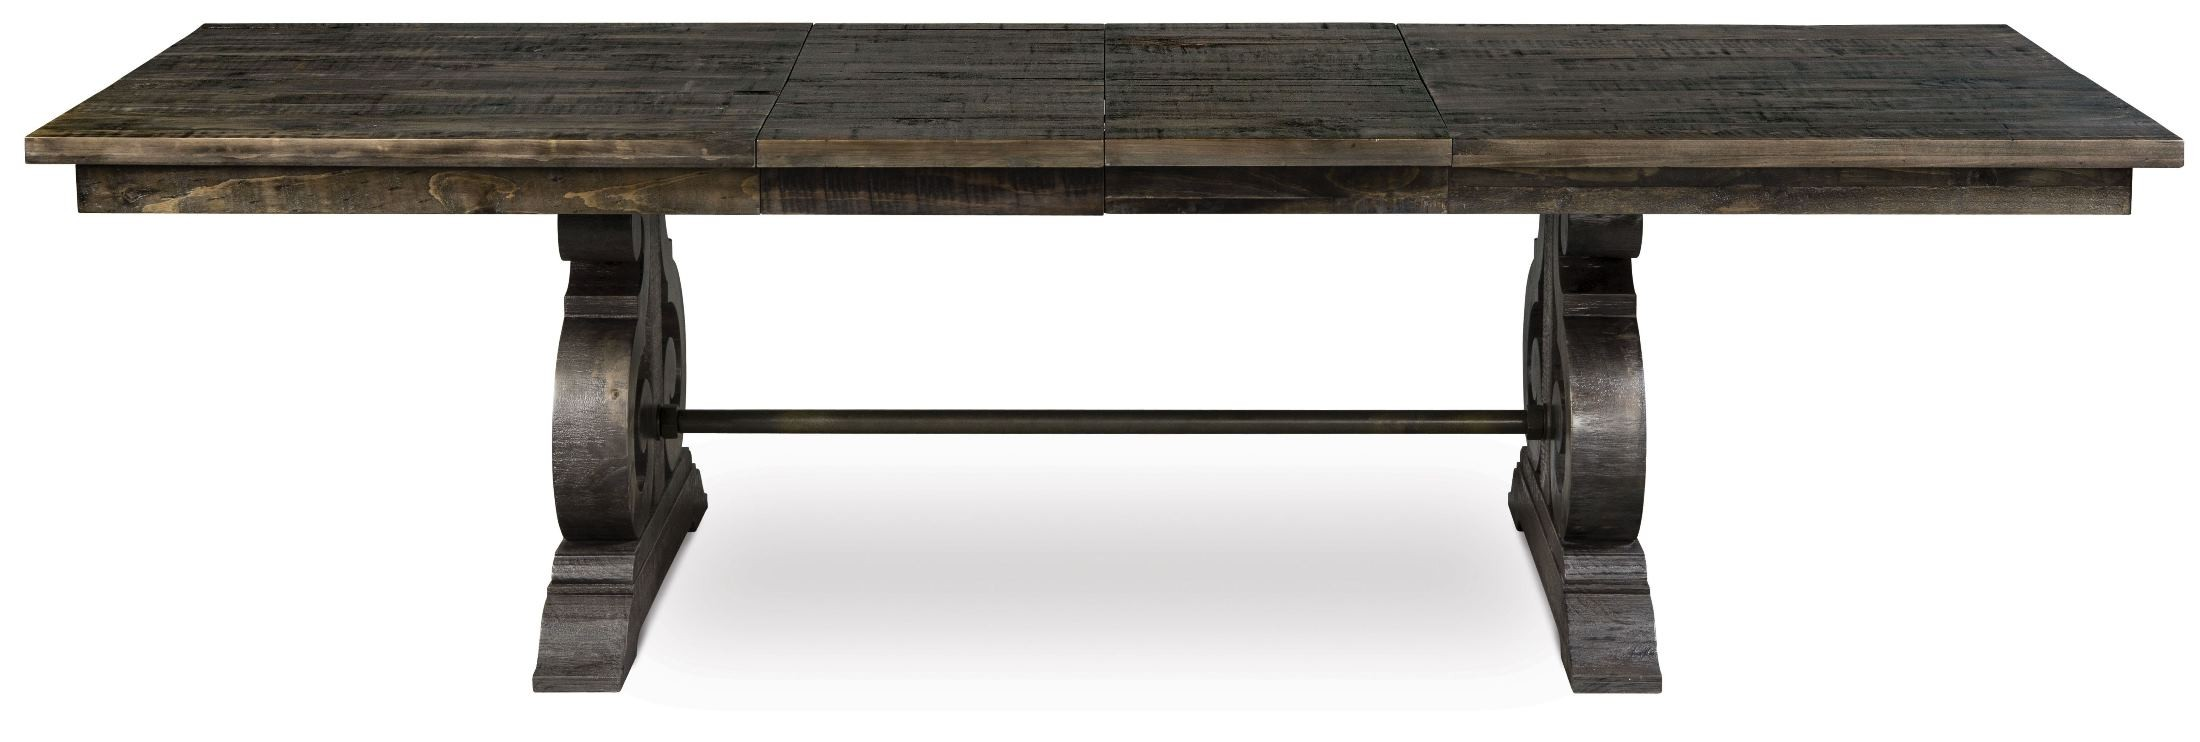 Bellamy Rectangular Dining Table from Magnussen Home (D2491-20T-20B) : Coleman Furniture